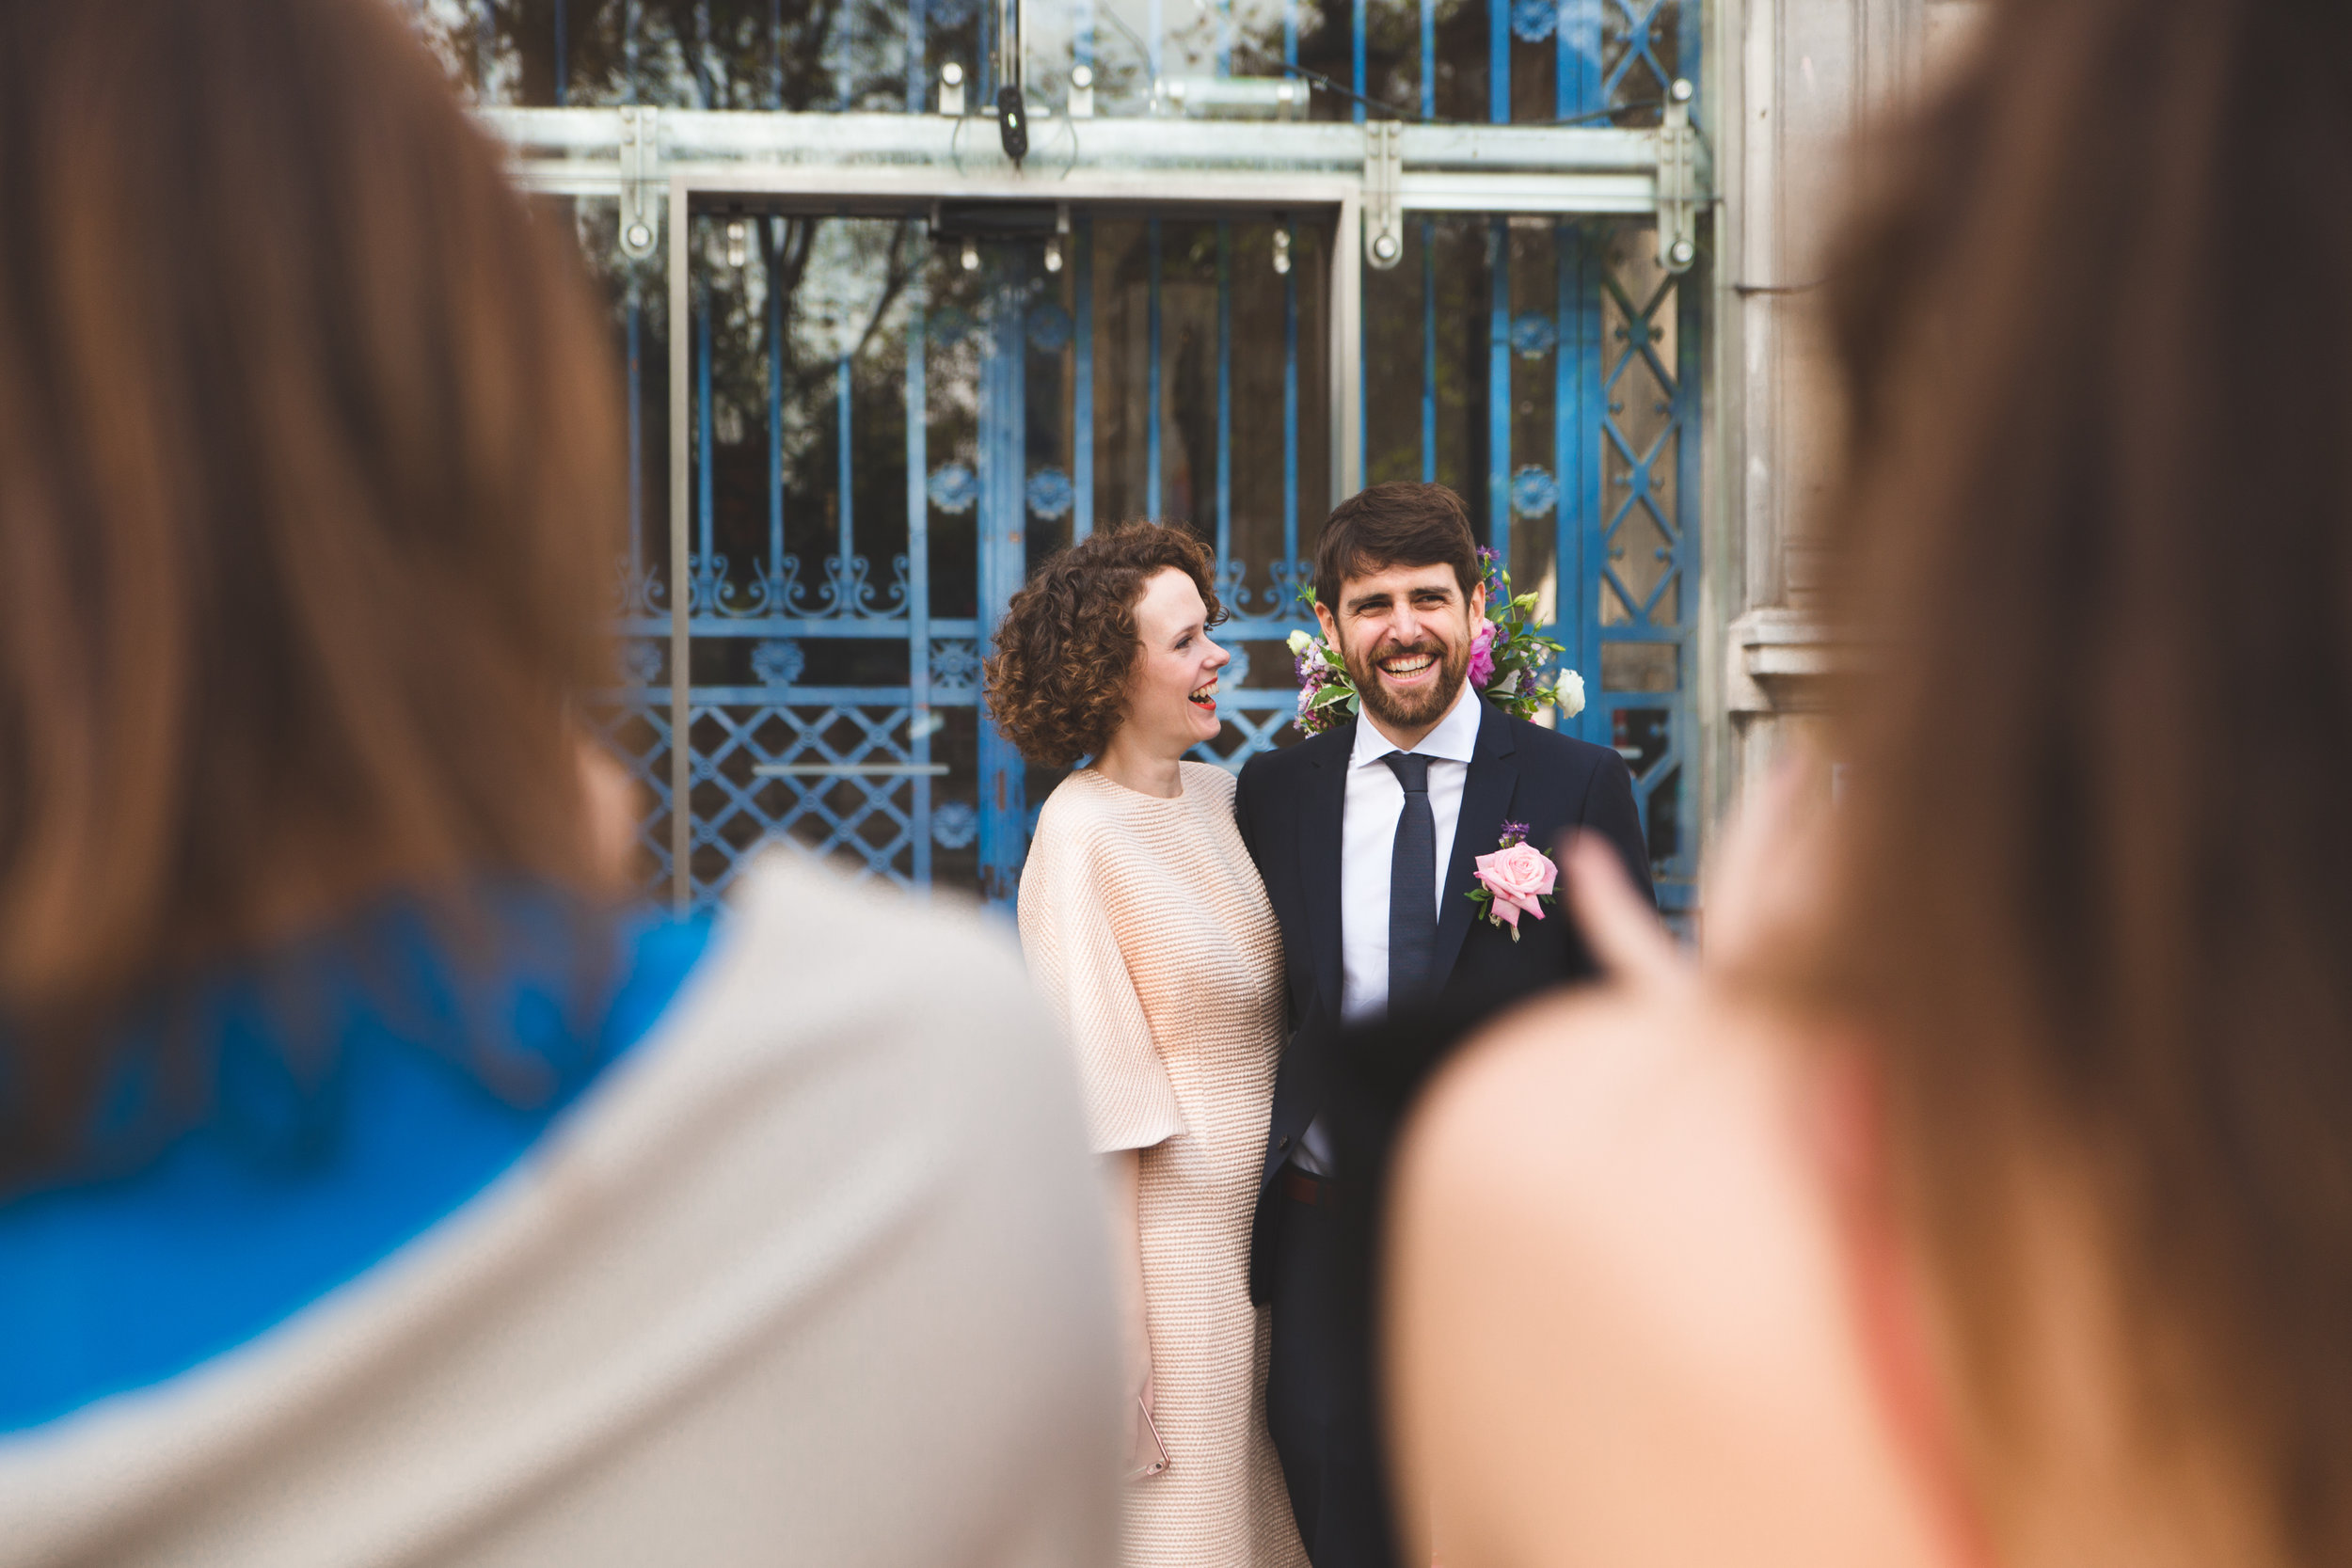 Emma&Nico_WeddingParis_by_UlaBlocksage-129.jpg